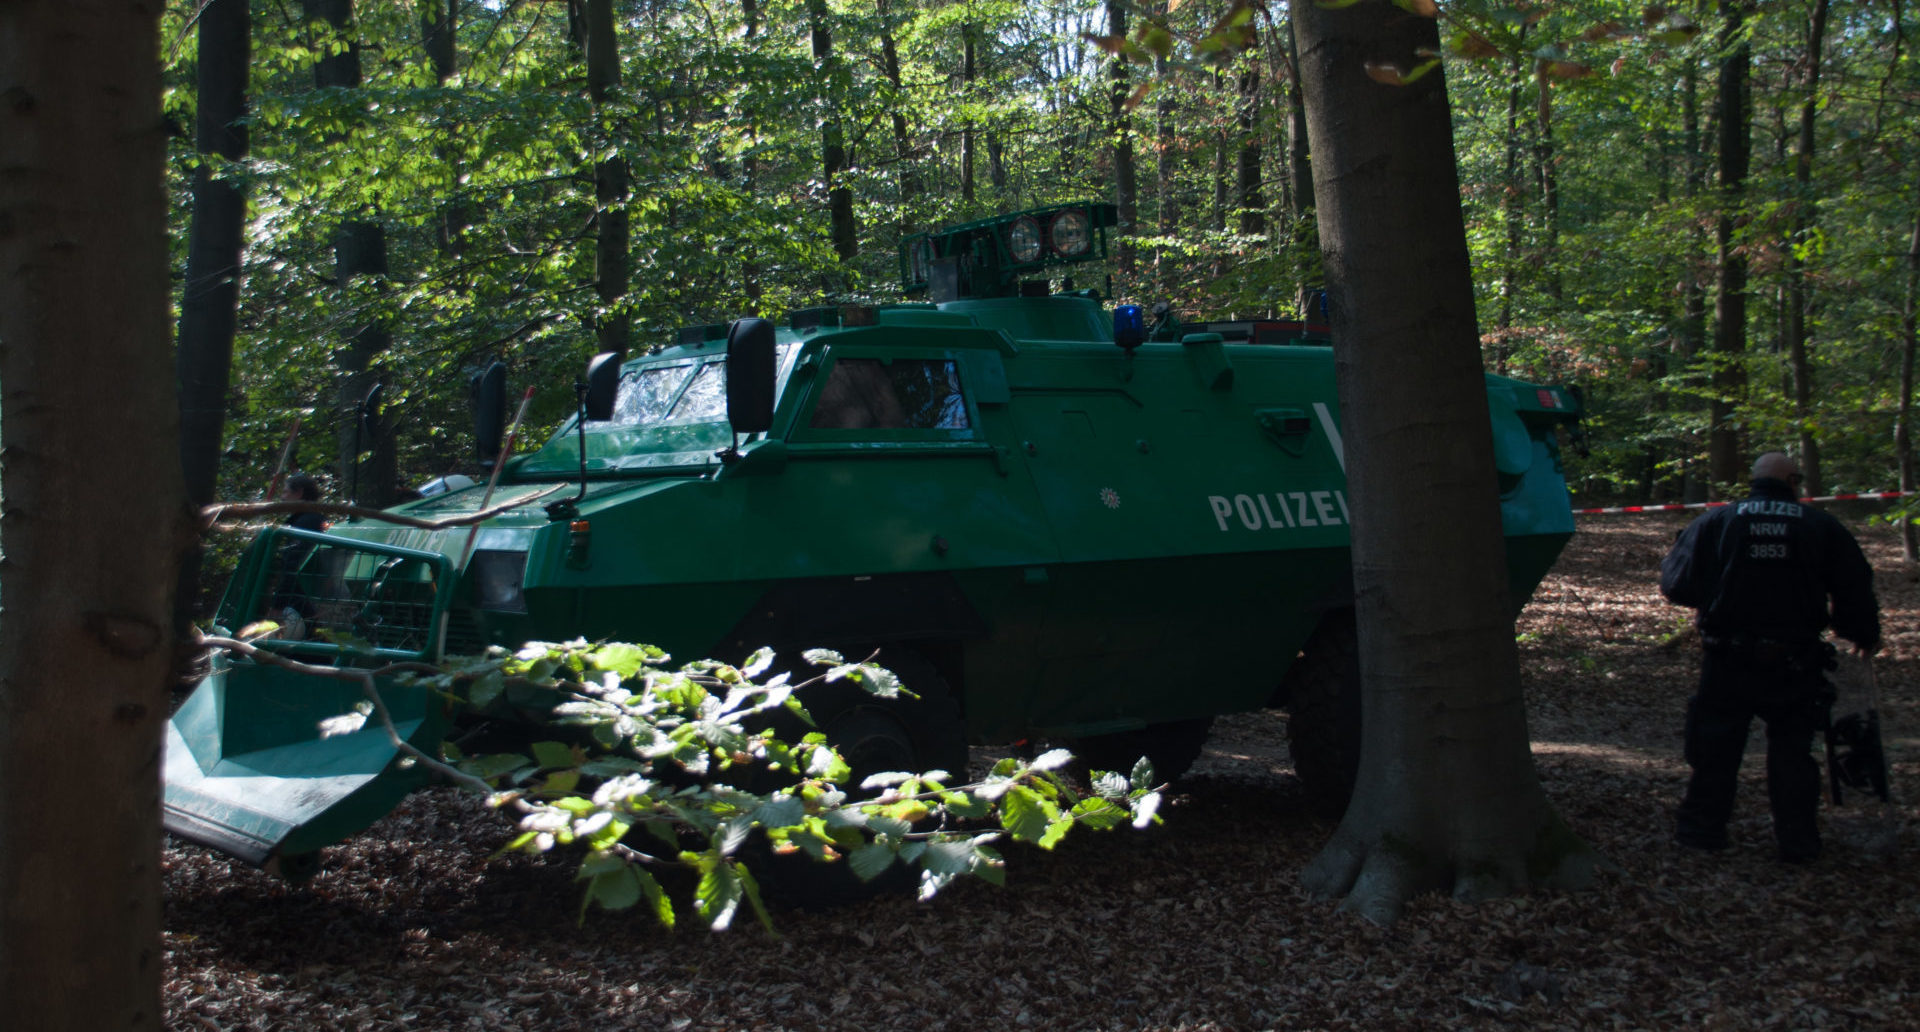 The police is trying to clear the Hambach Forest. A tank is used to force the peaceful protesting activists to leave there tree houses